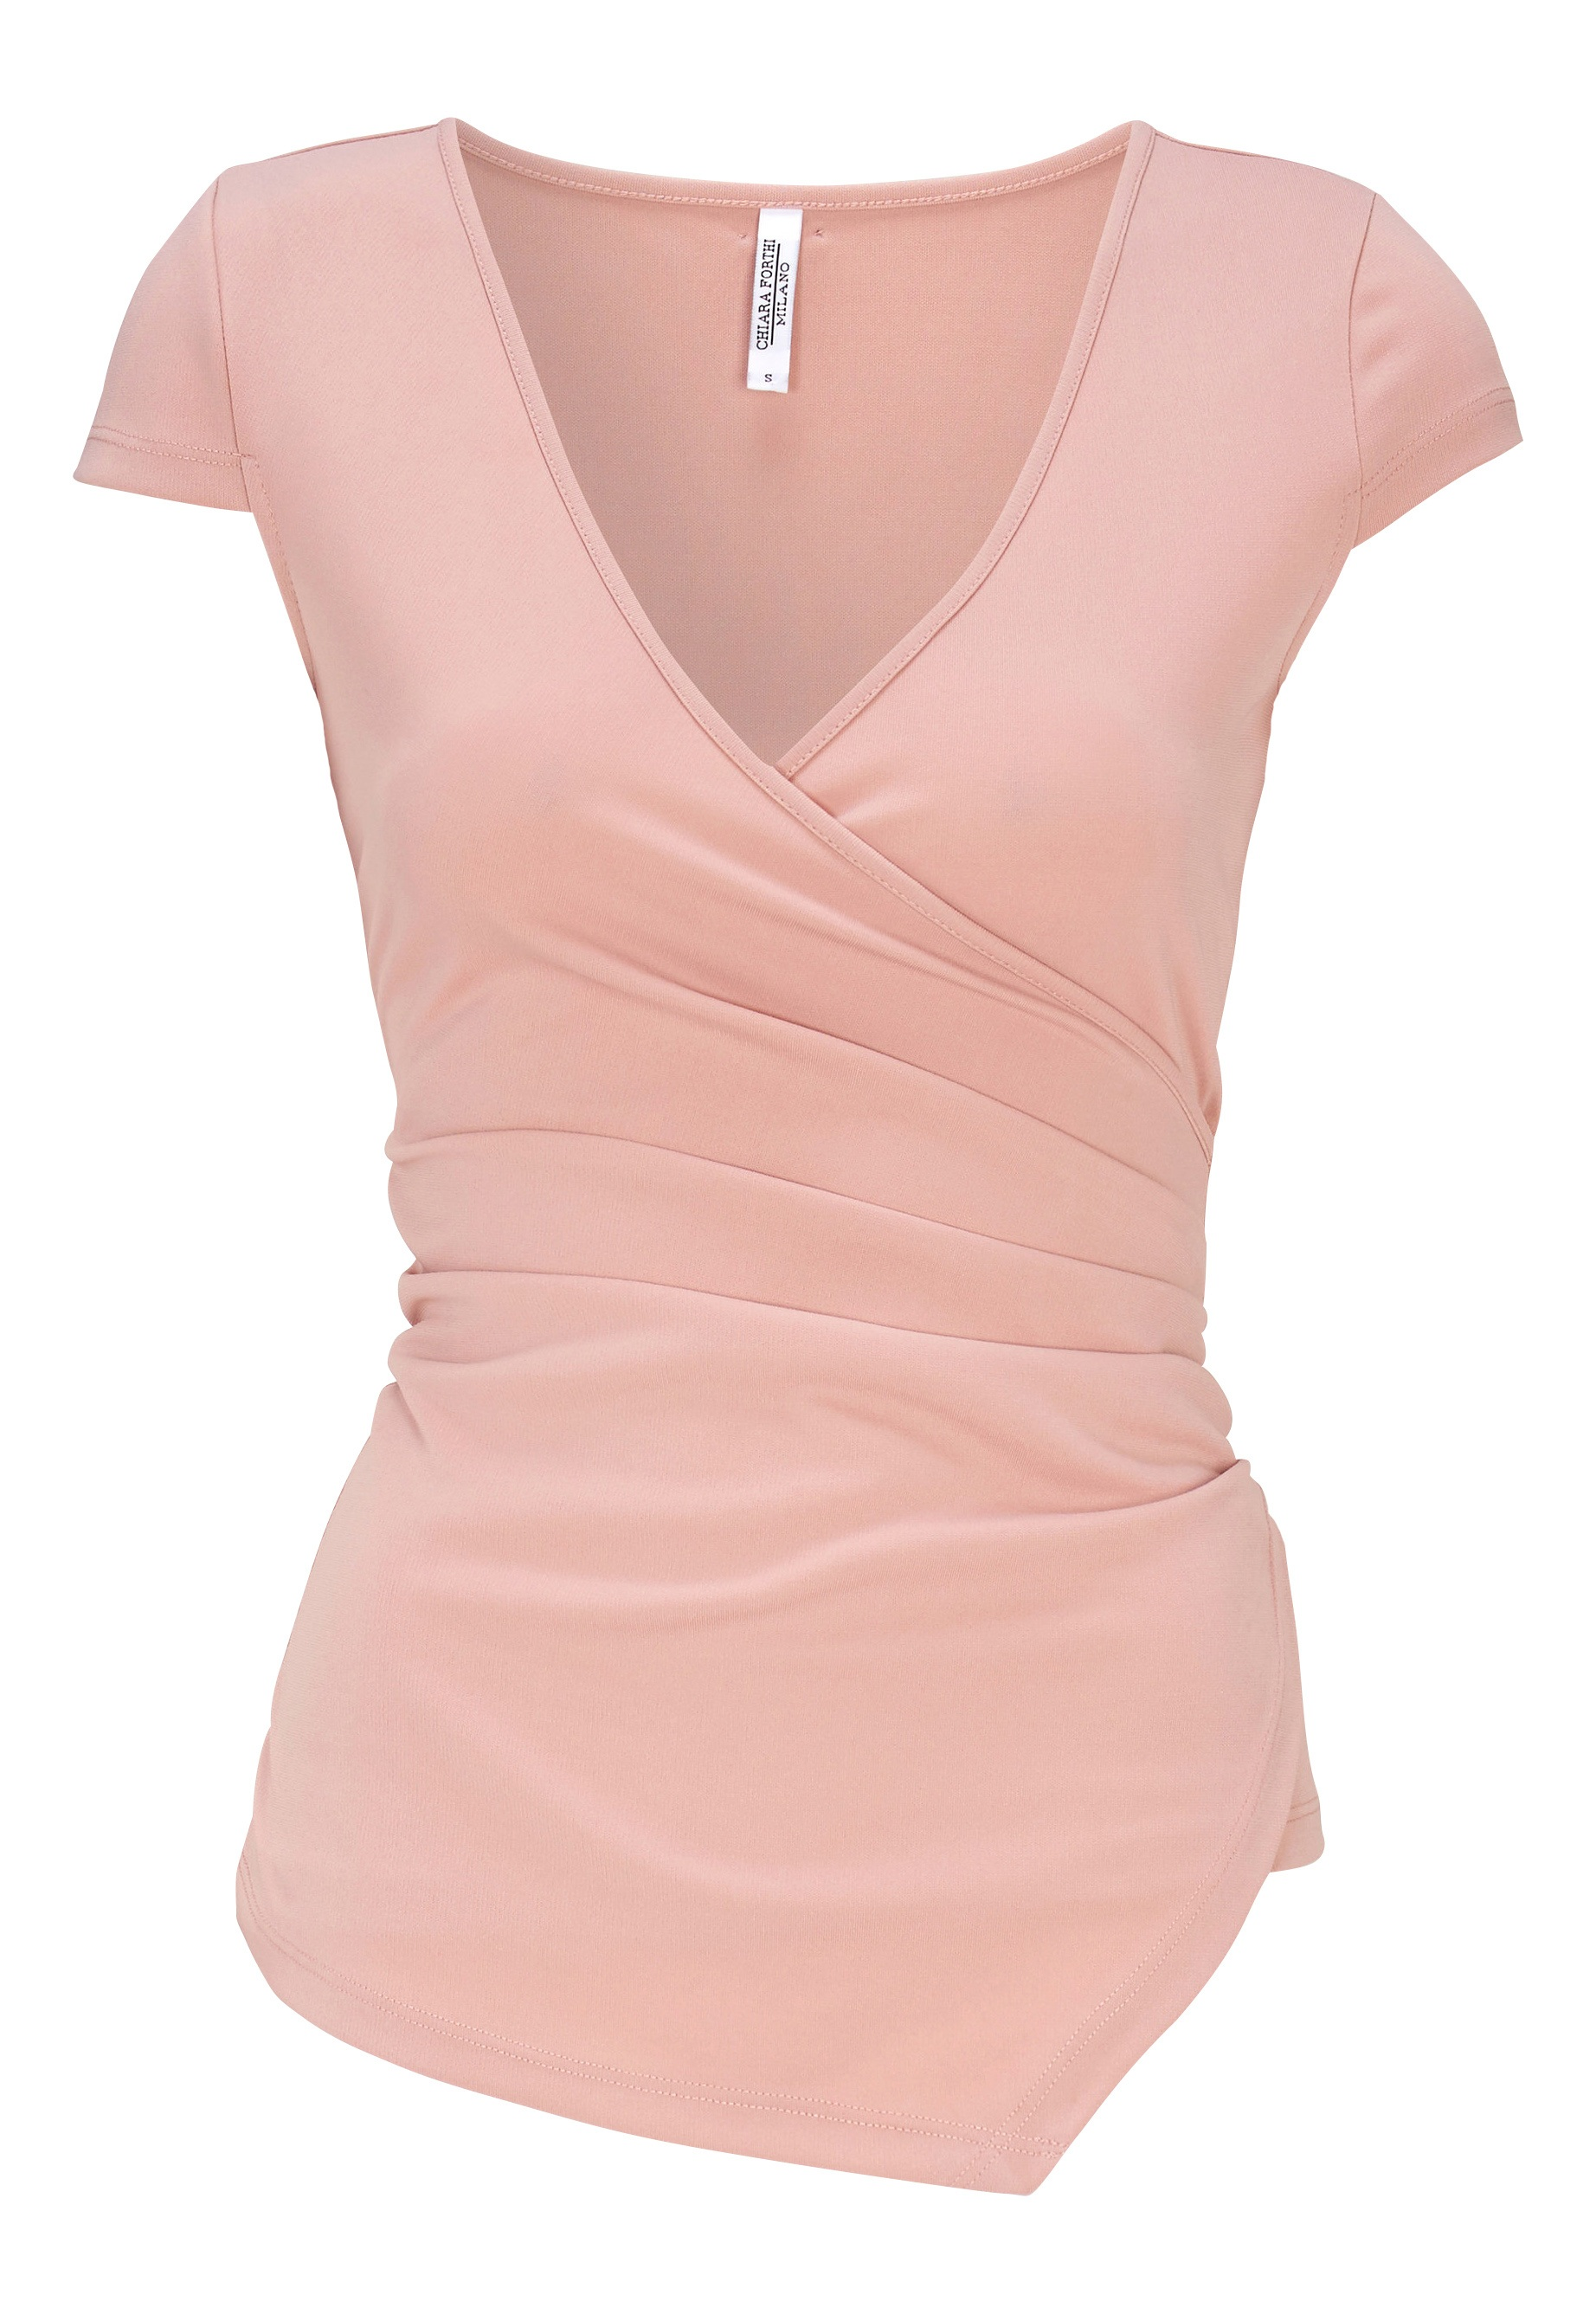 chiara-forthi-soprano-top-light-pink_4